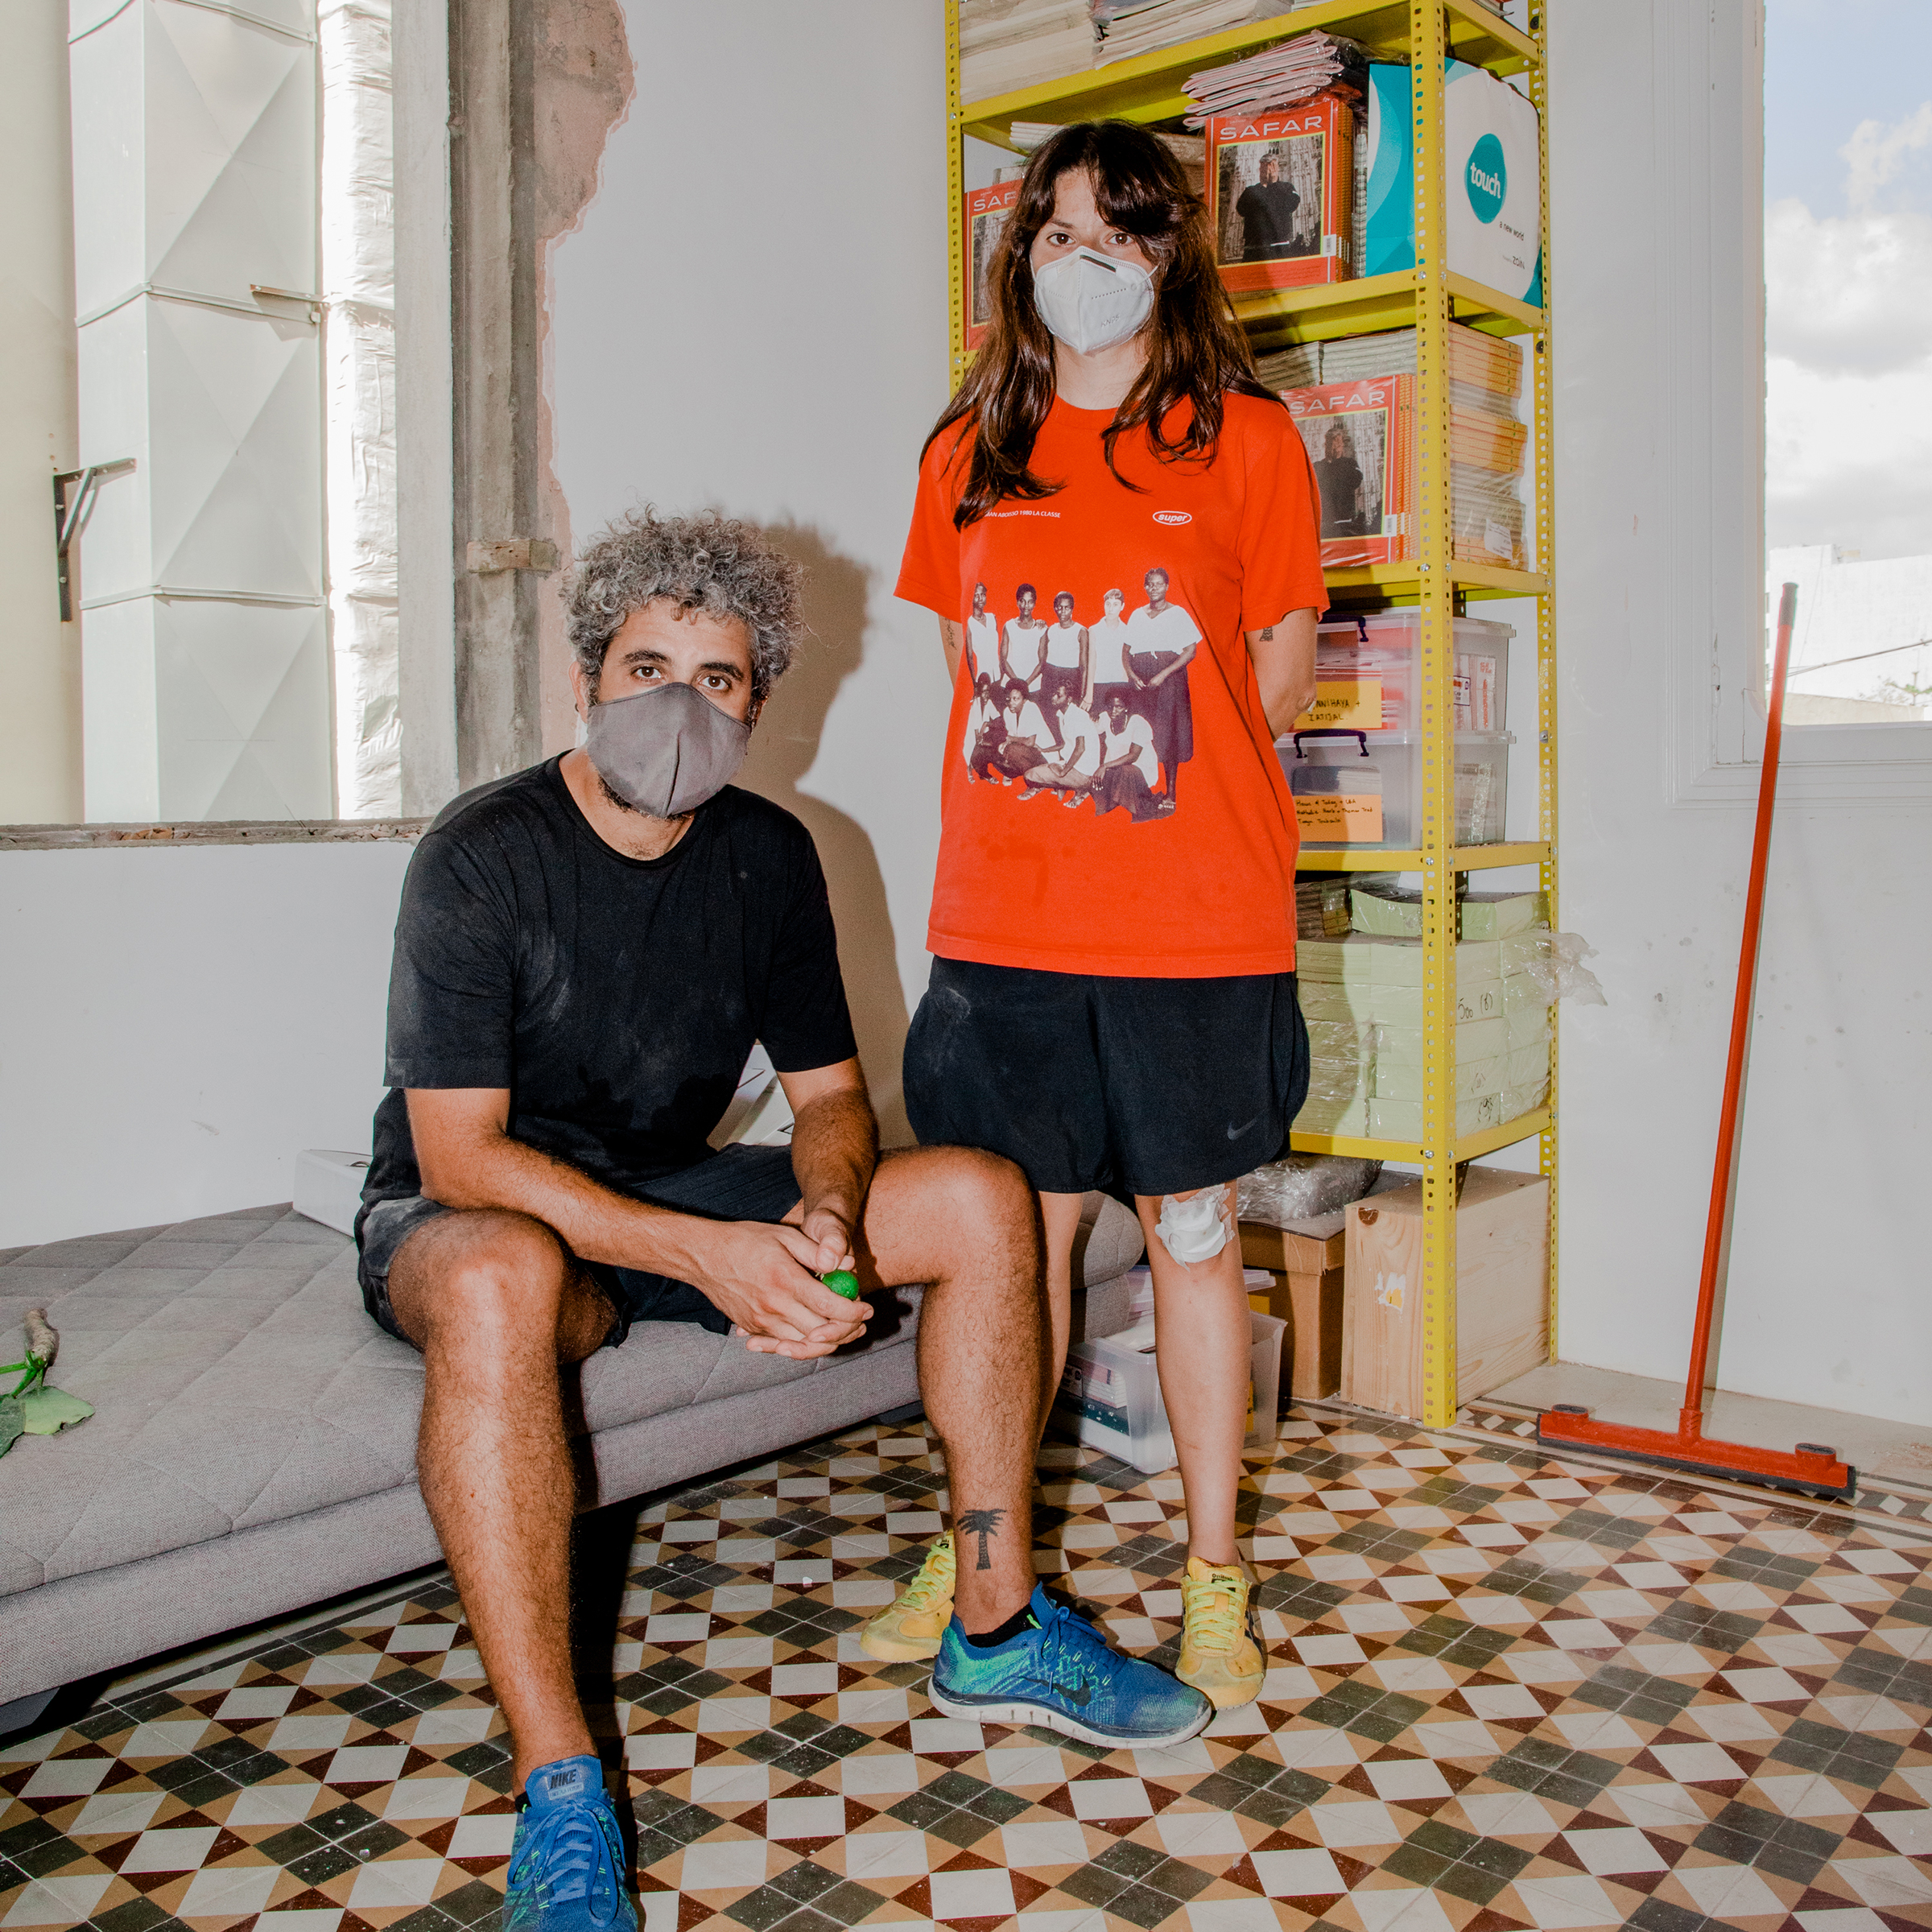 Hatem Imam and Maya Moumne of Studio Safar, a design and communications agency, photographed on Aug. 10. The explosion  effectively eradicated any semblance of normalcy, and with it any remnant of decency,  the pair said.  The obscenity of the negligence of a state that knowingly stores 2,750 tons of highly explosive materials in its capital's port is only multiplied by this state's sickening lack of recourse in the aftermath.